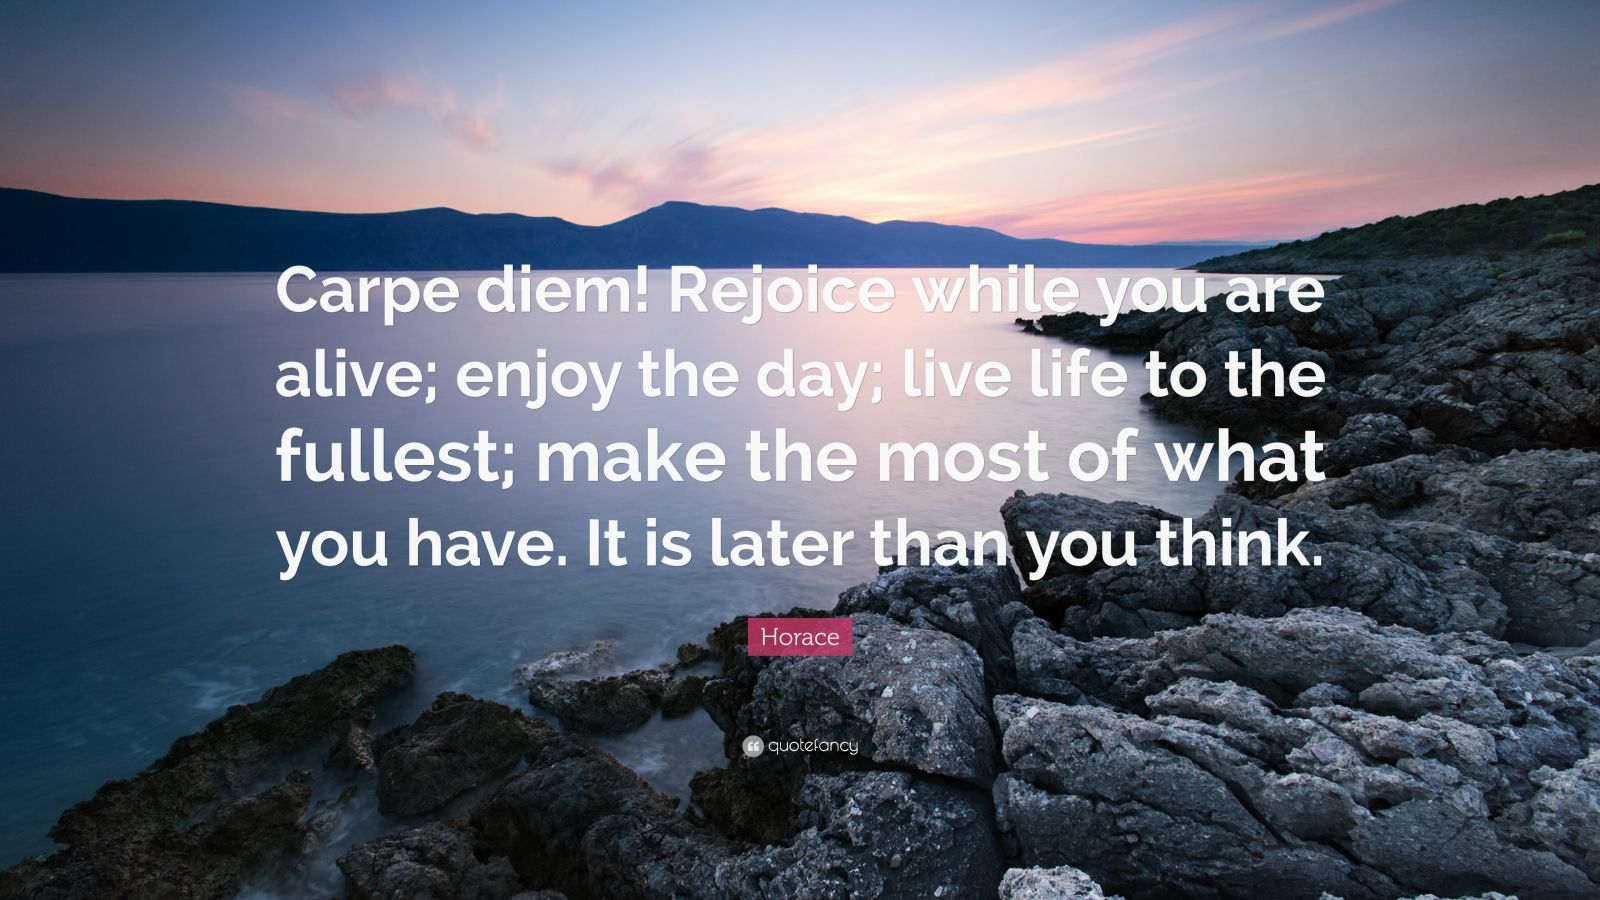 Beautiful Wallpapers With Inspirational Quotes Horace Quote Carpe Diem Rejoice While You Are Alive